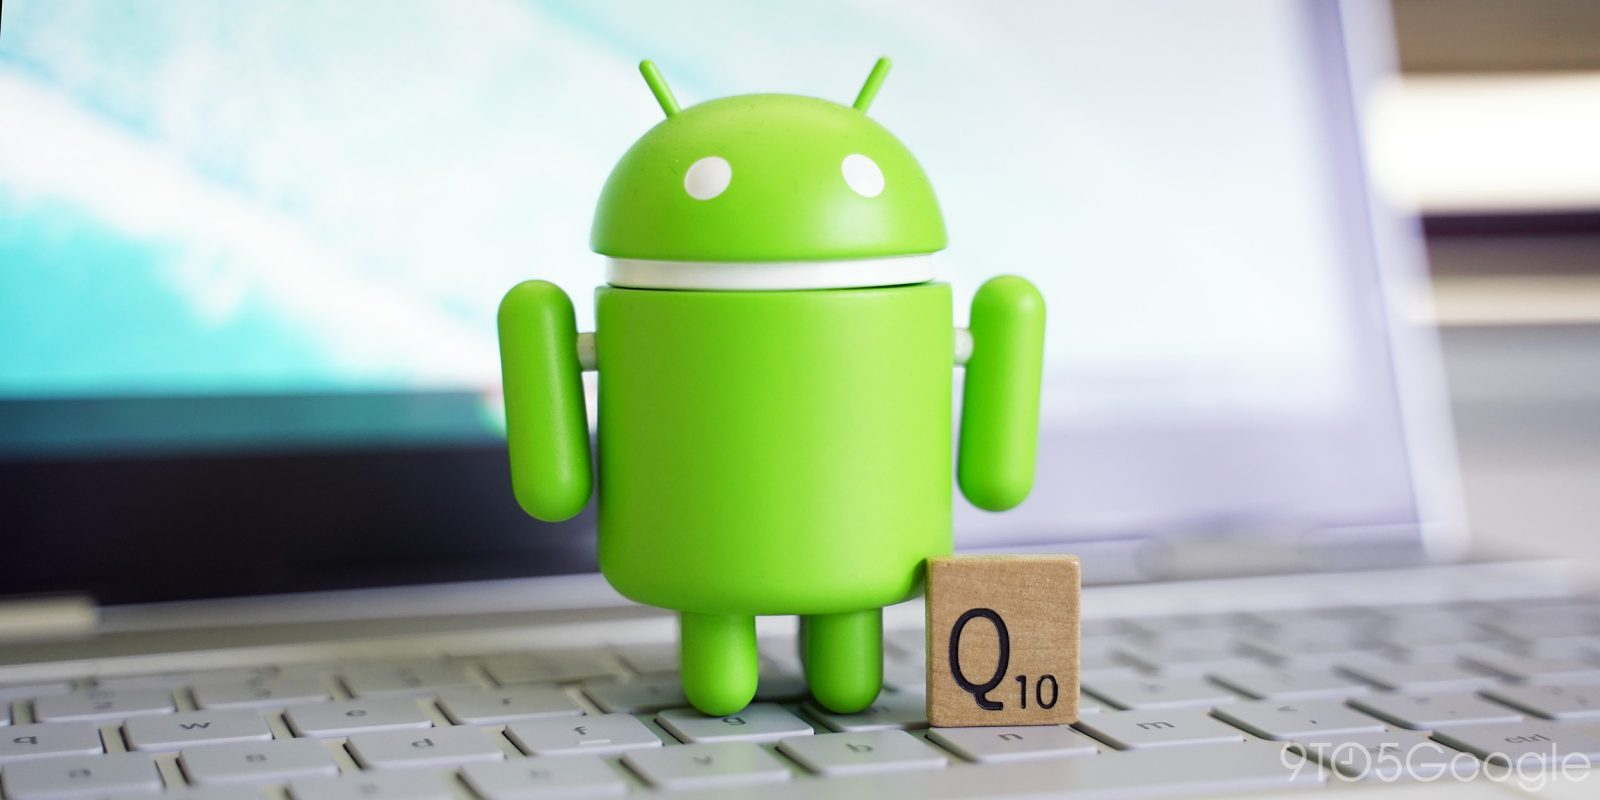 Initial evidence suggests Google will bring Android Q to Chrome OS